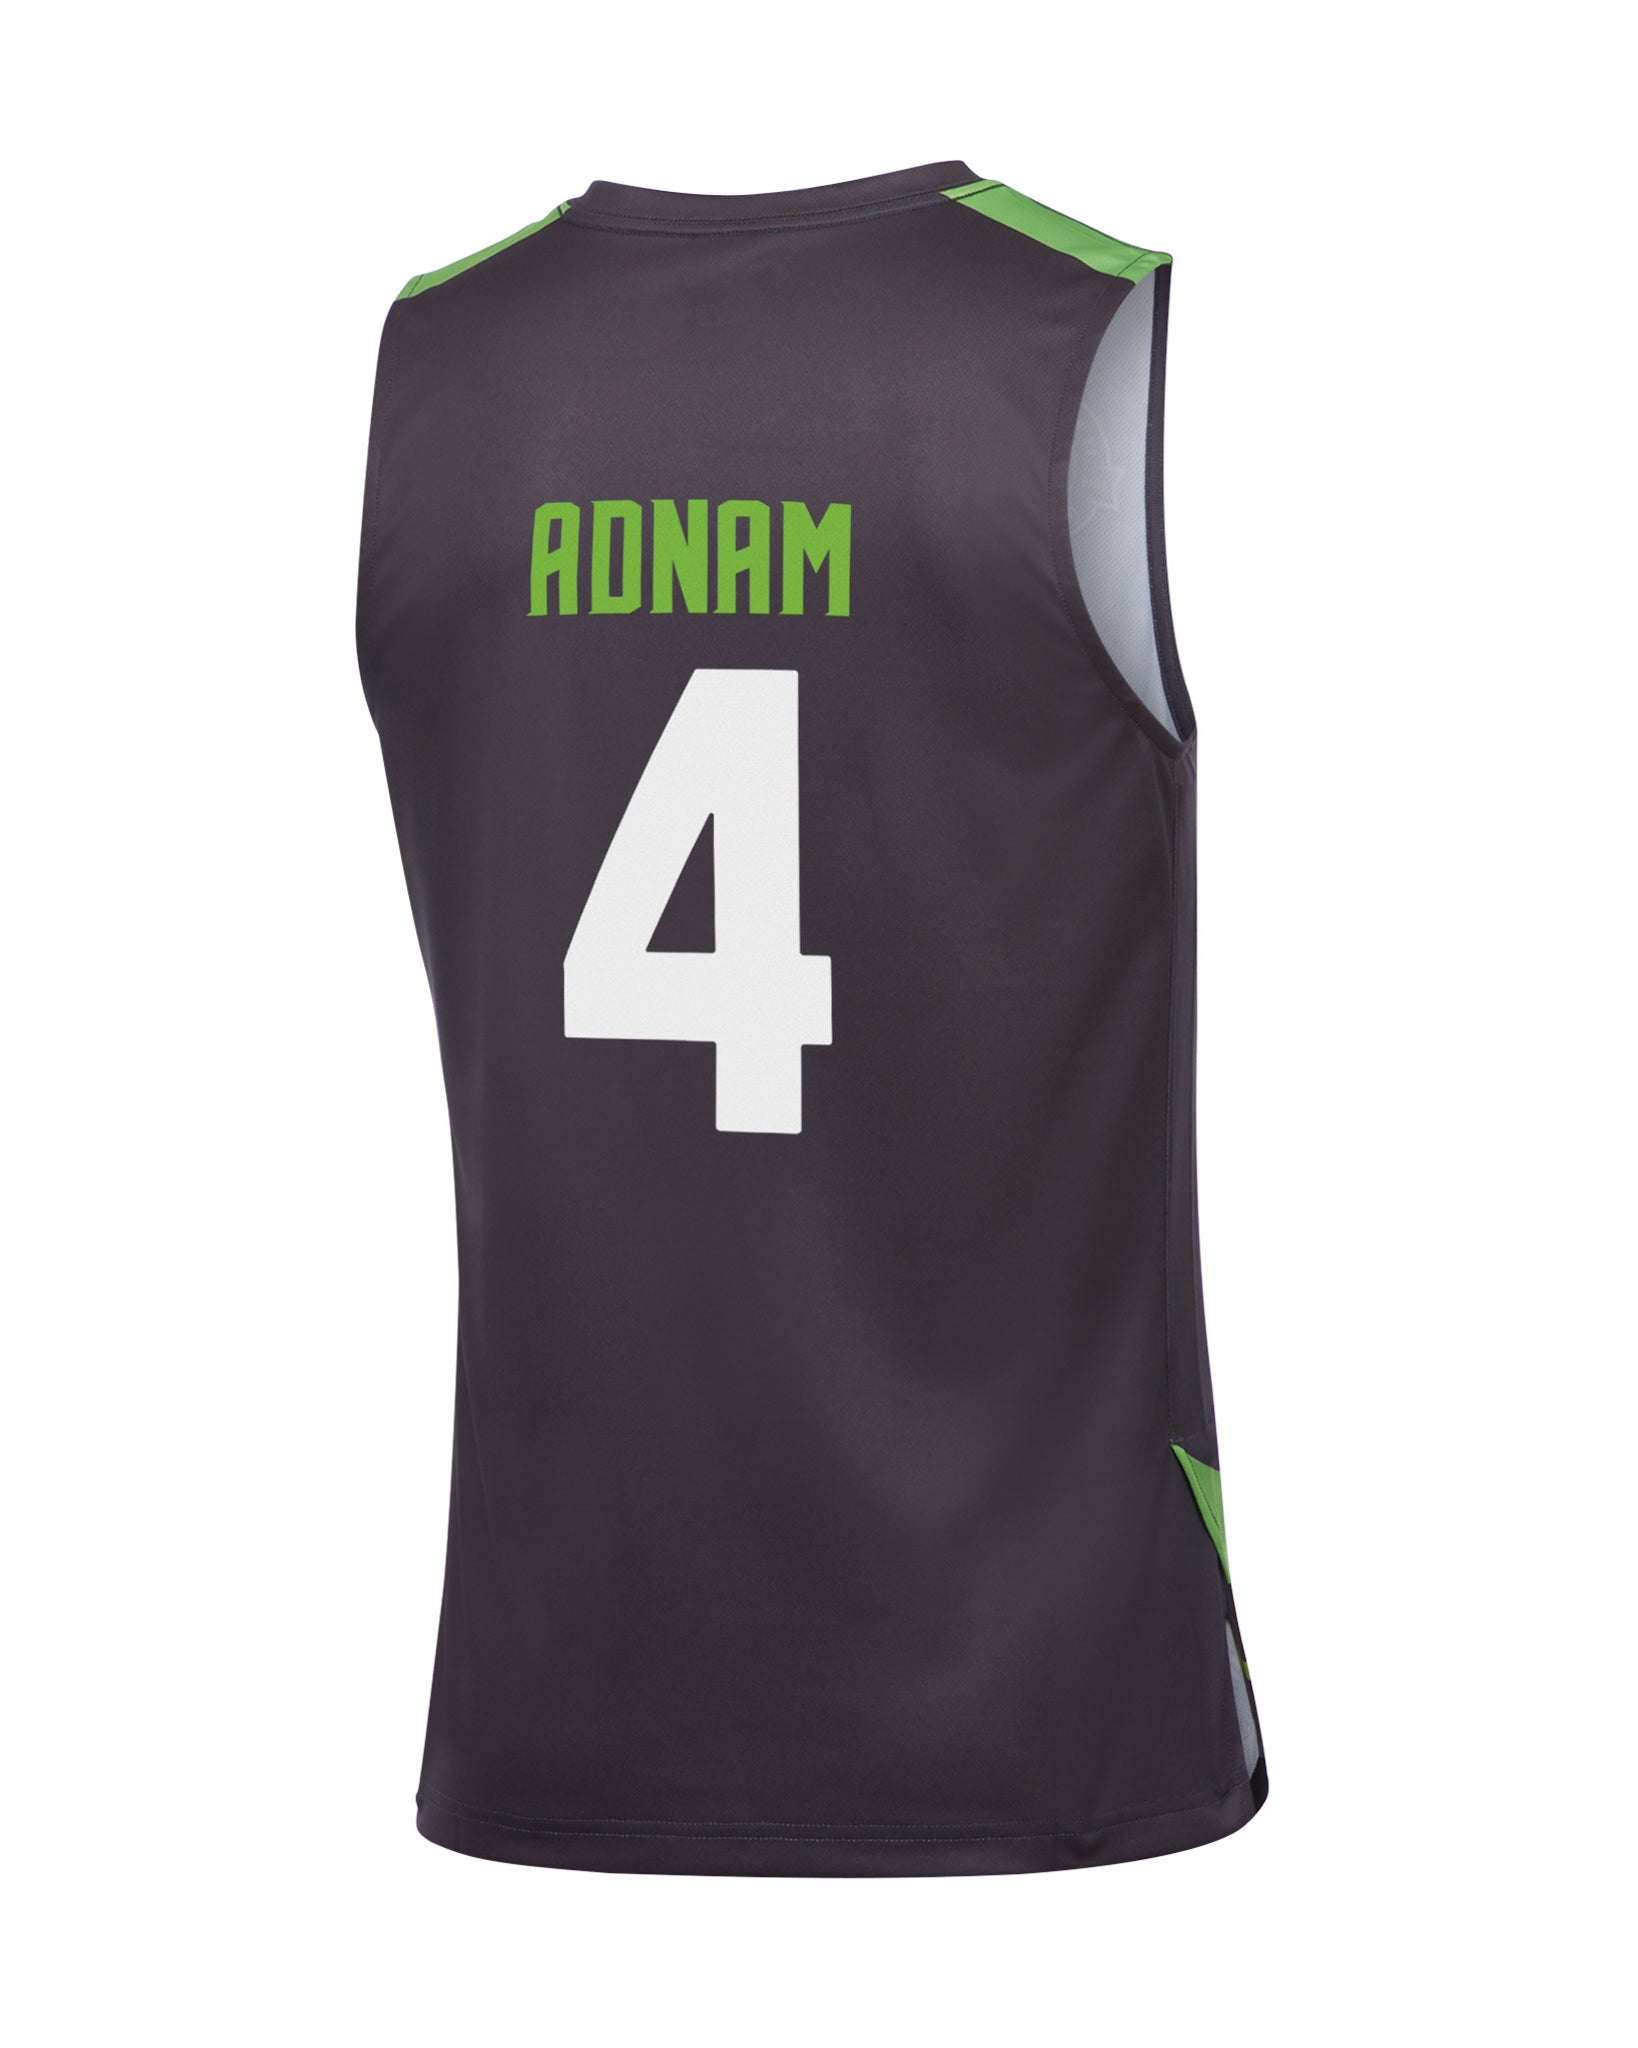 s-e-melbourne-phoenix-19-20-authentic-home-jersey-kyle-adnam - Back Image